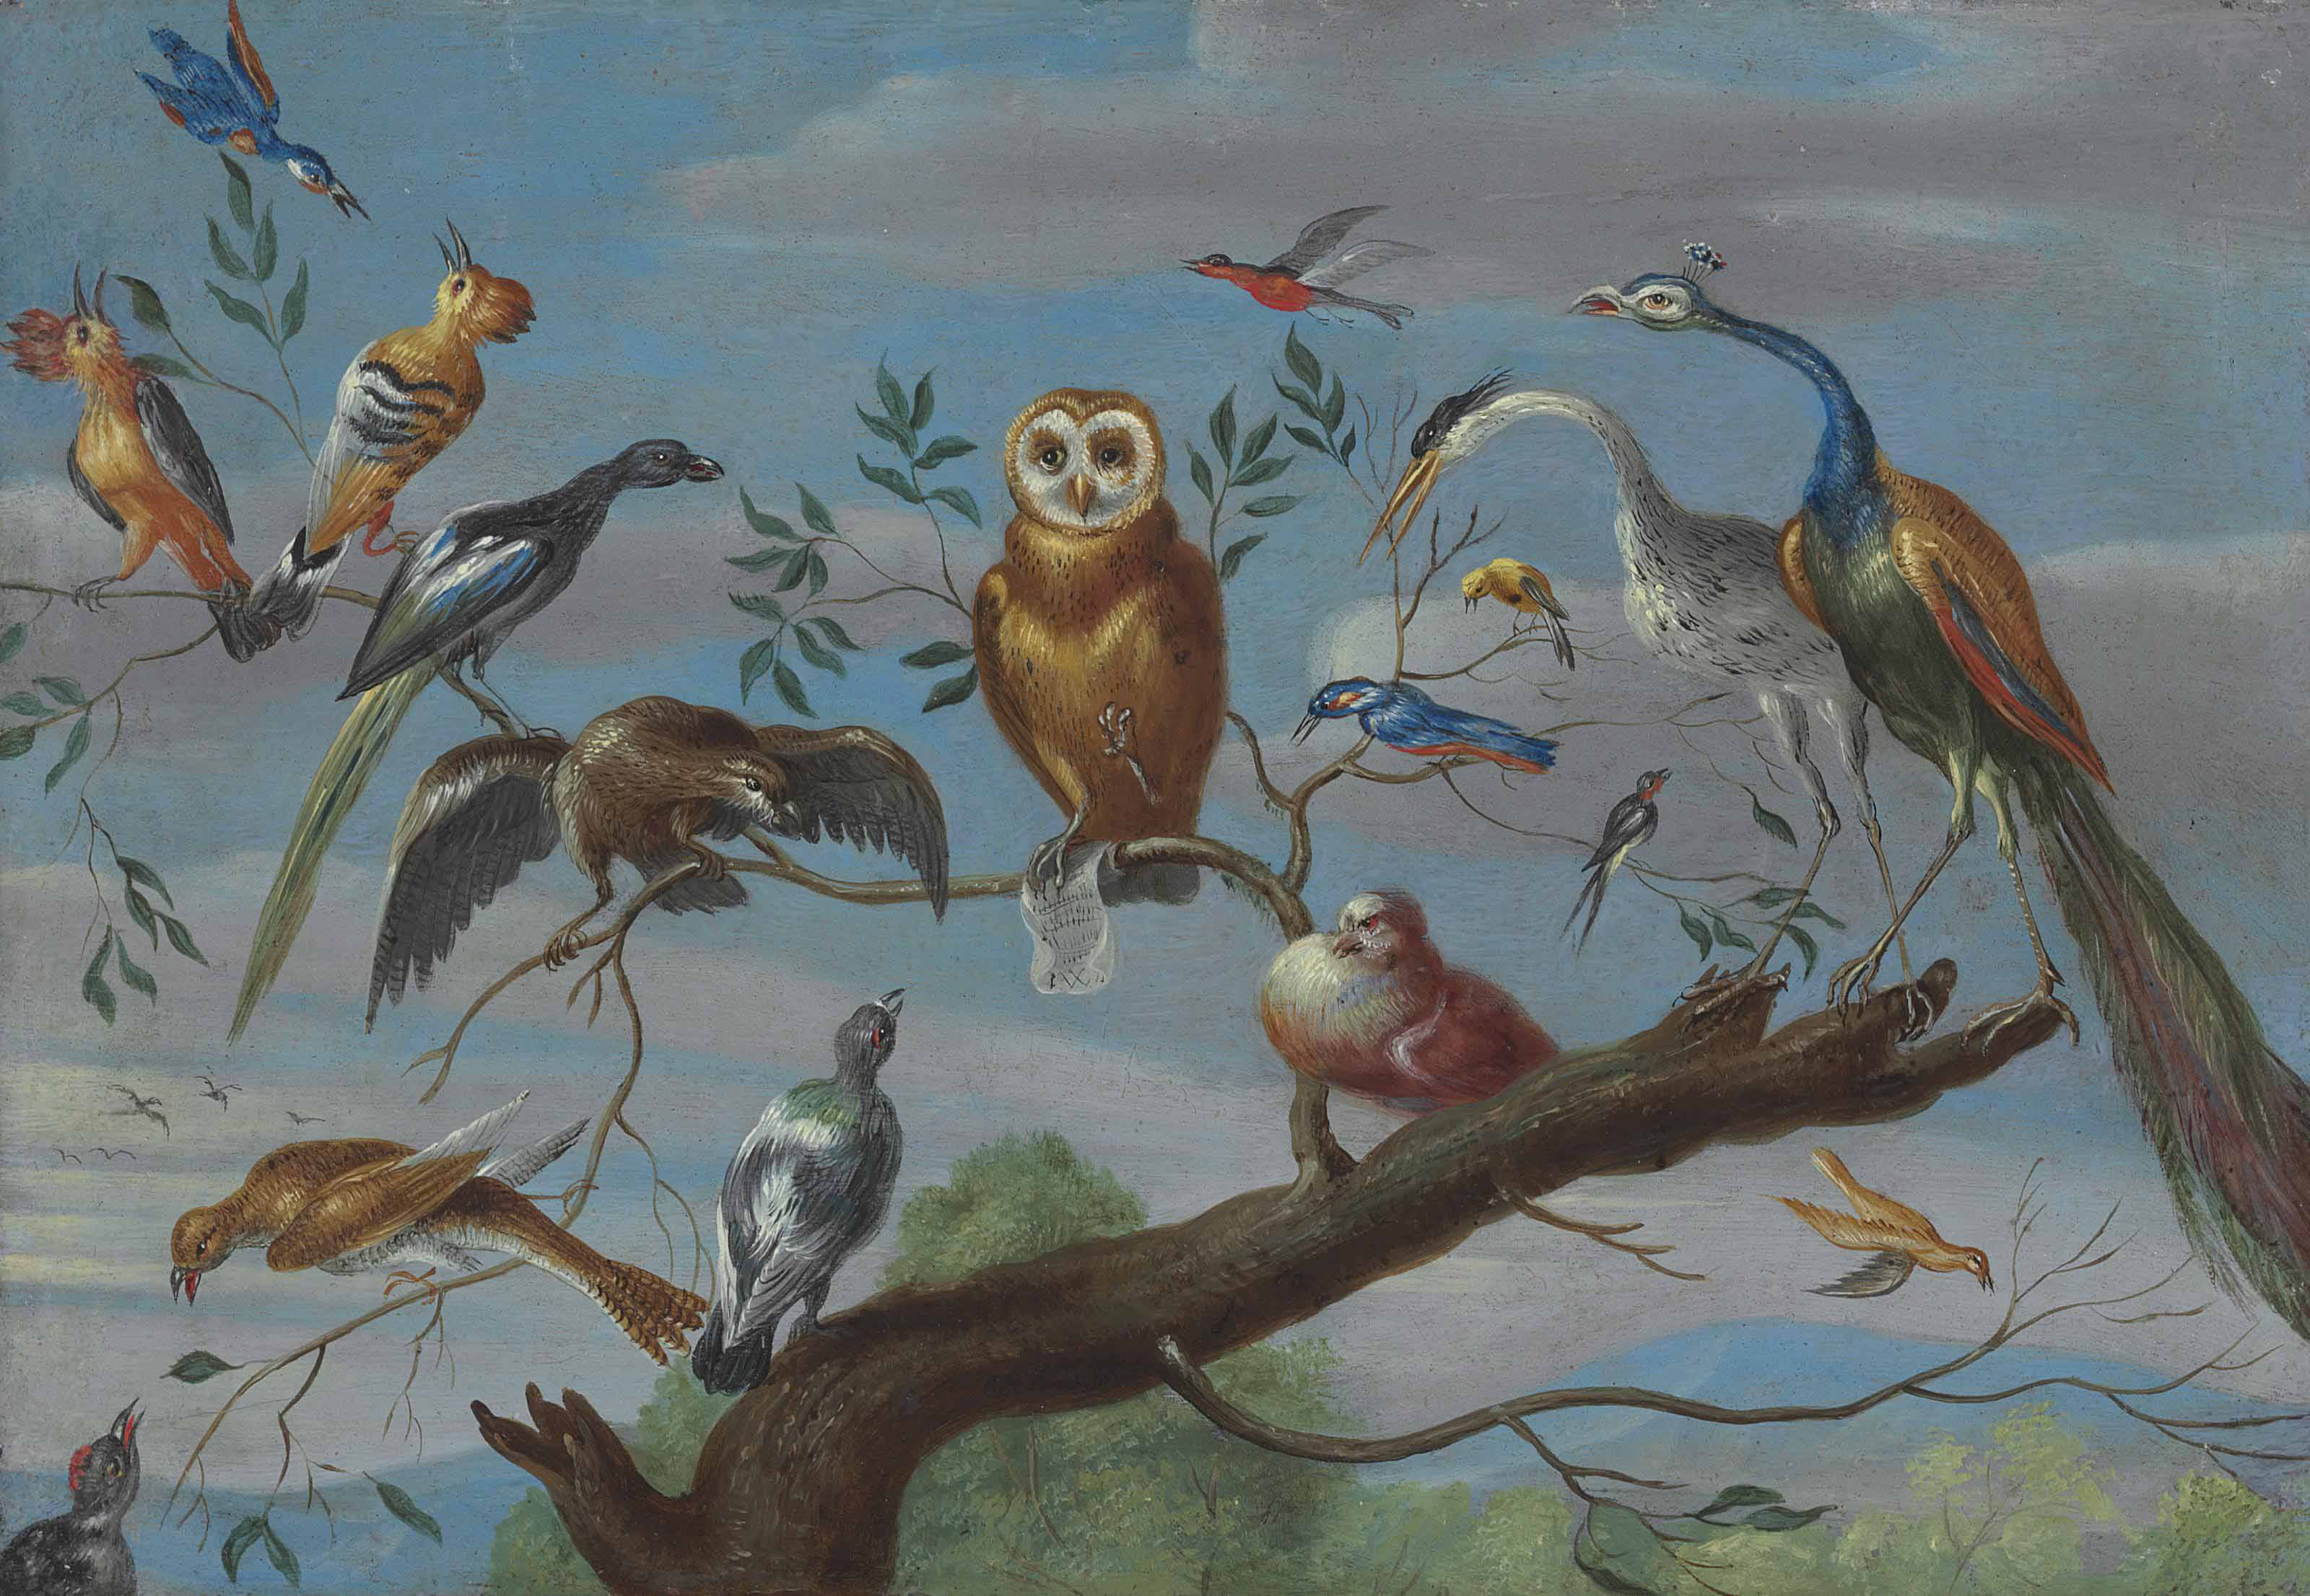 A concert of birds: an owl, pigeon, canary, peacock and other birds on a tree branch